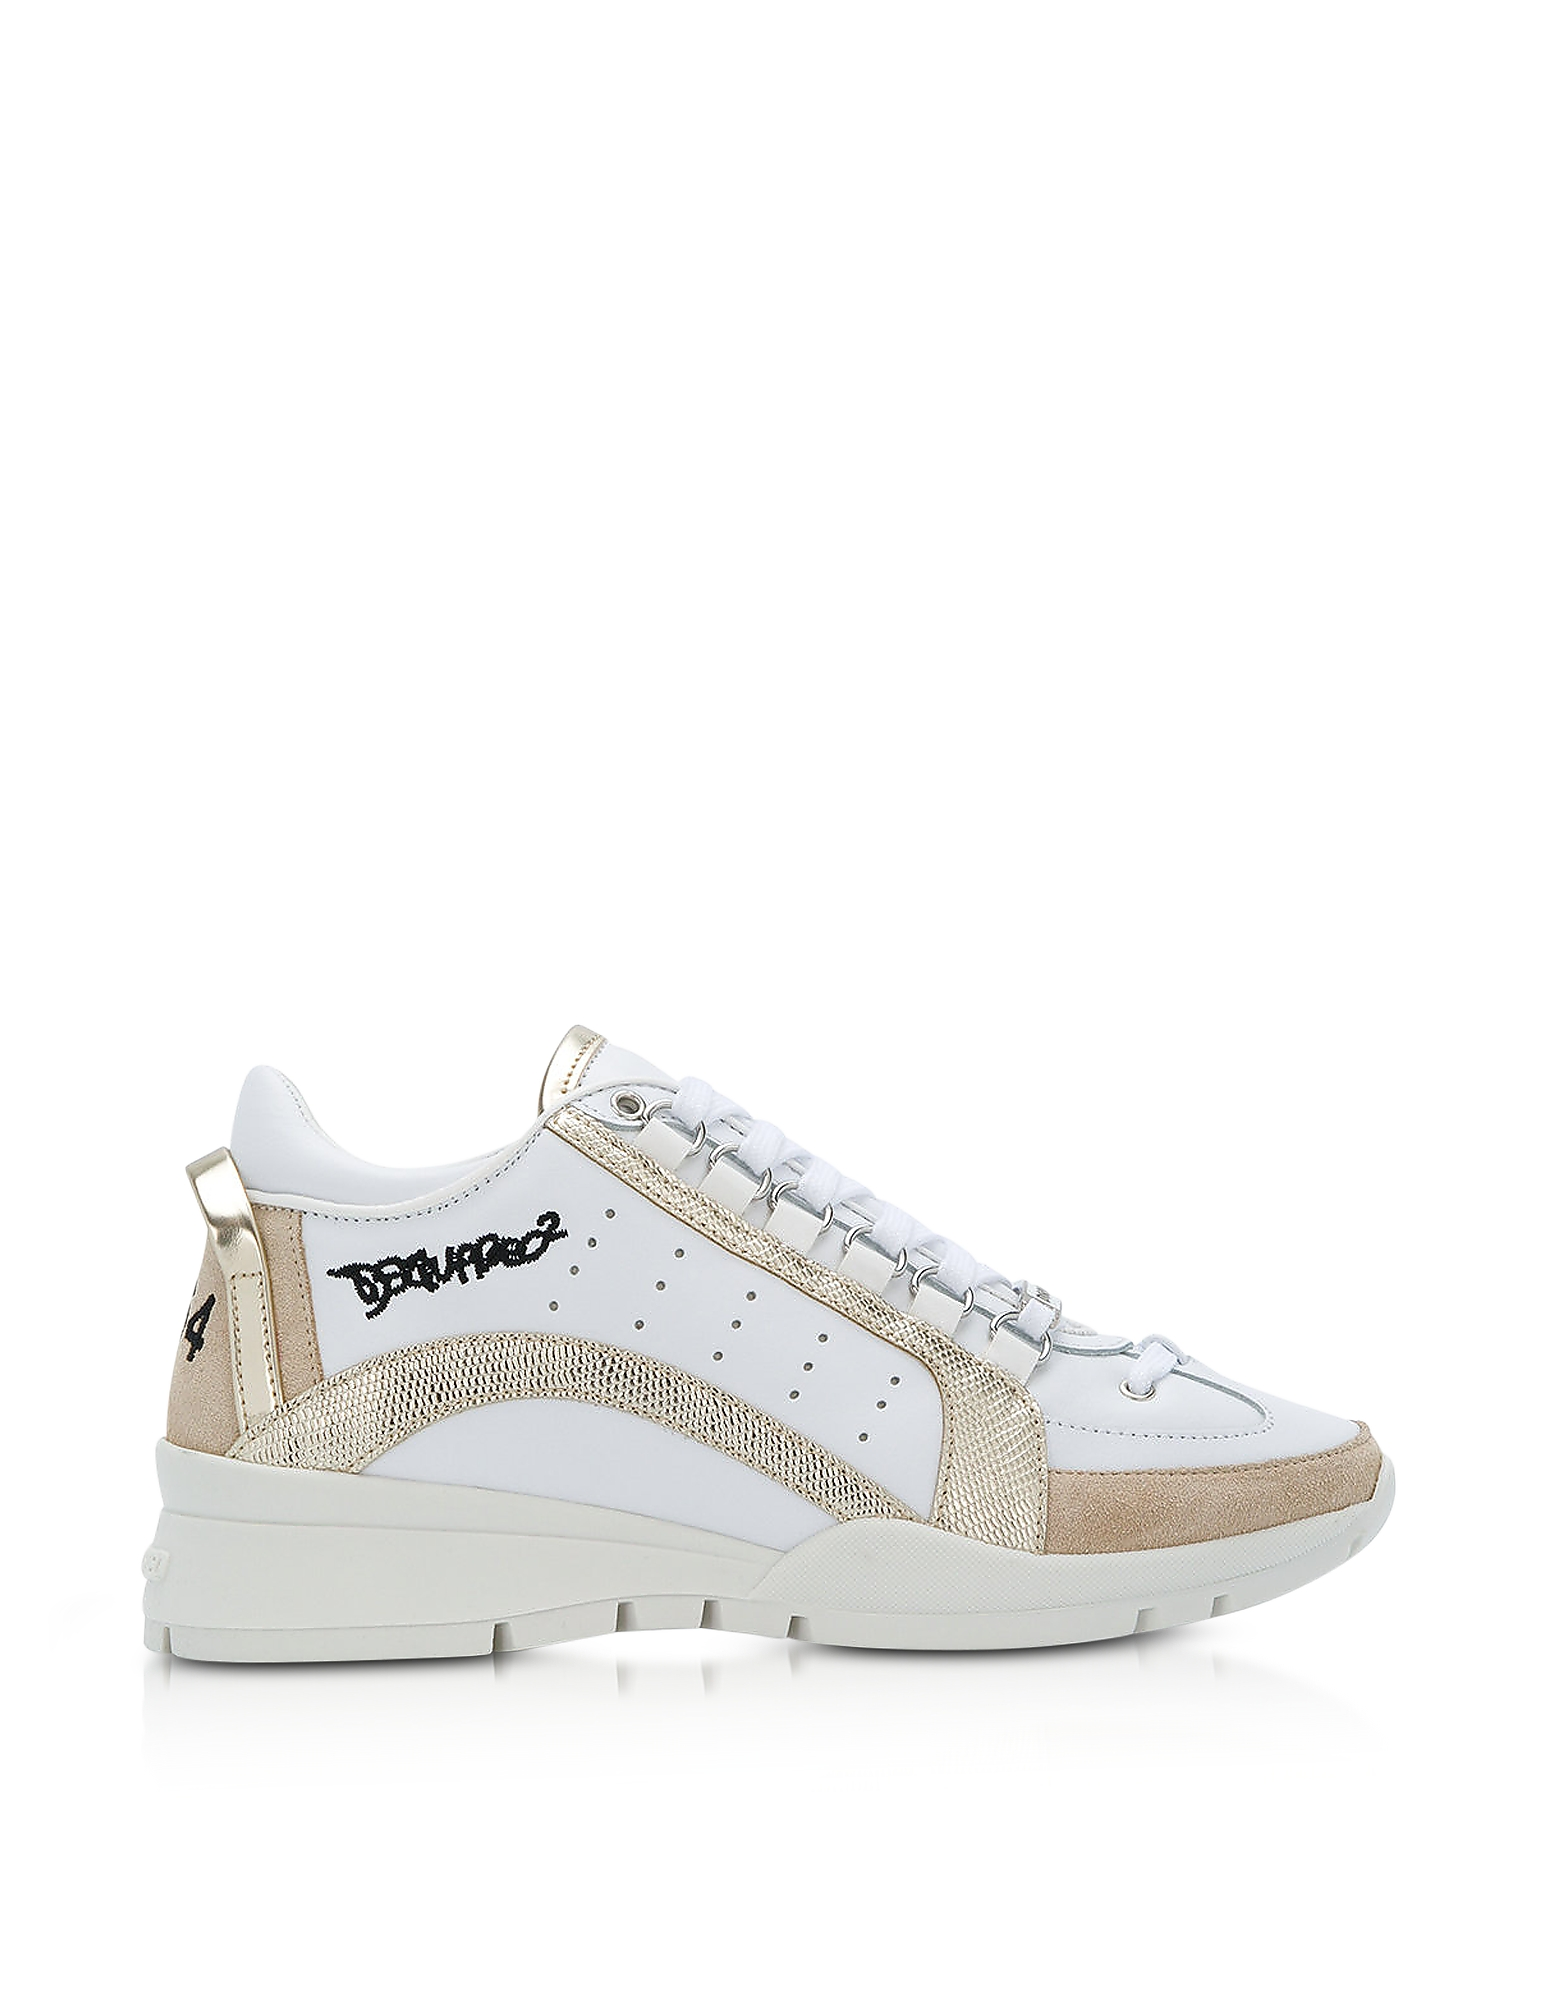 DSquared2 Shoes, White and Gold Leather Women's Sneakers